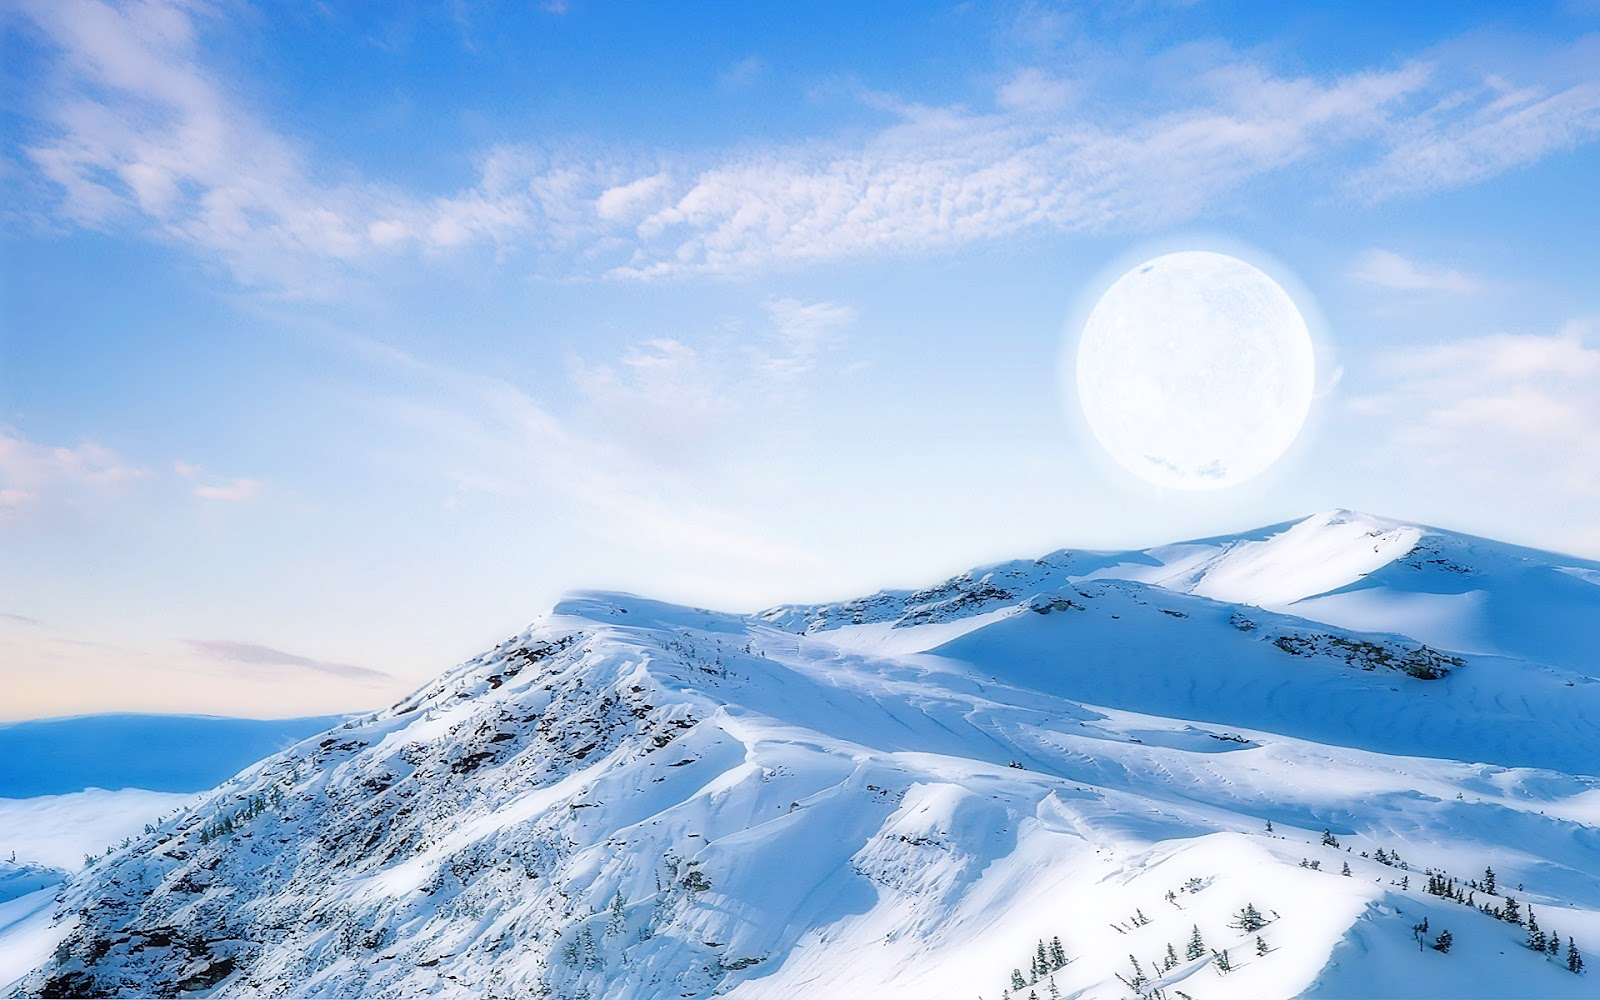 Best Ice Mountain Hd Wallpaper For Mac And Image 3226489